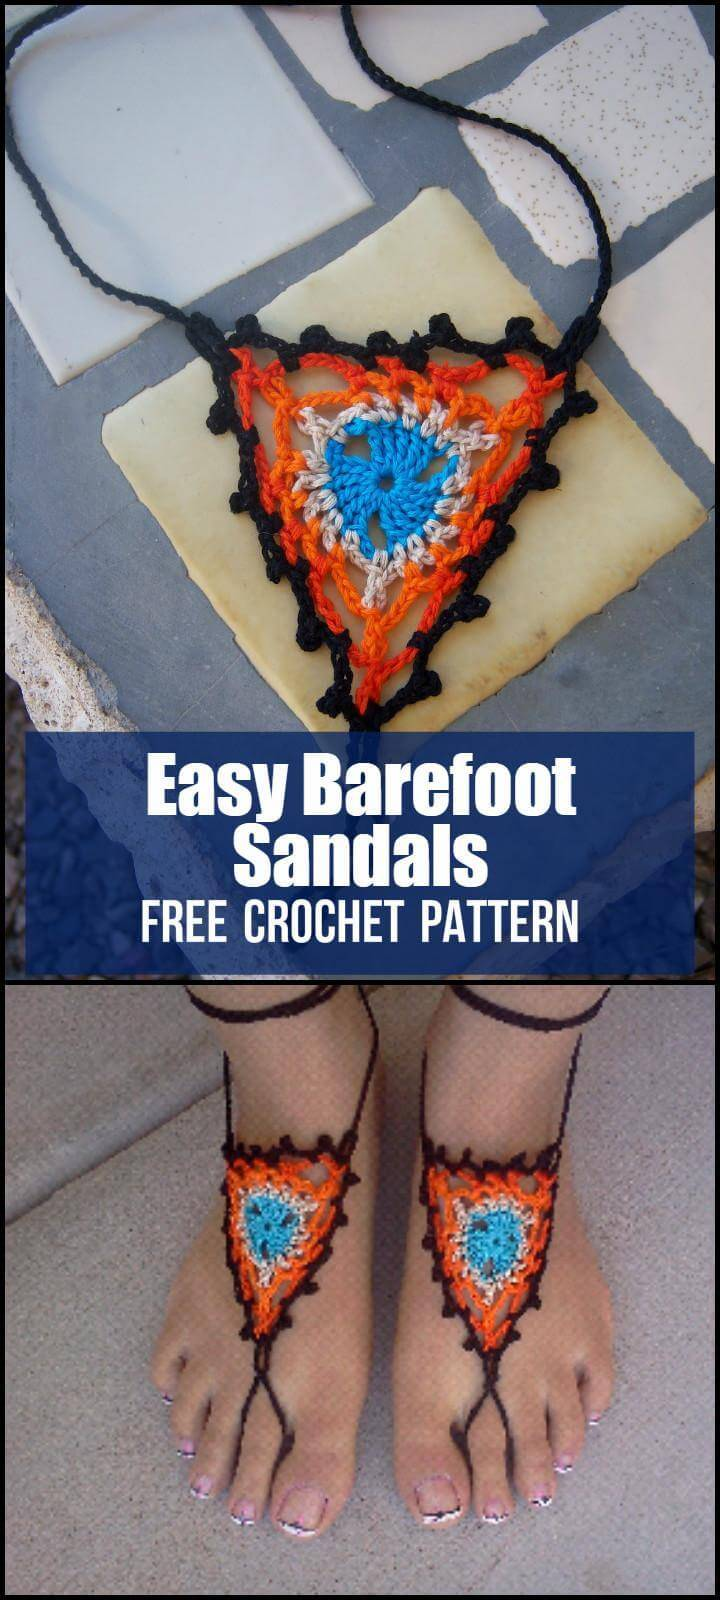 Easy Barefoot Sandals Free Crochet Pattern